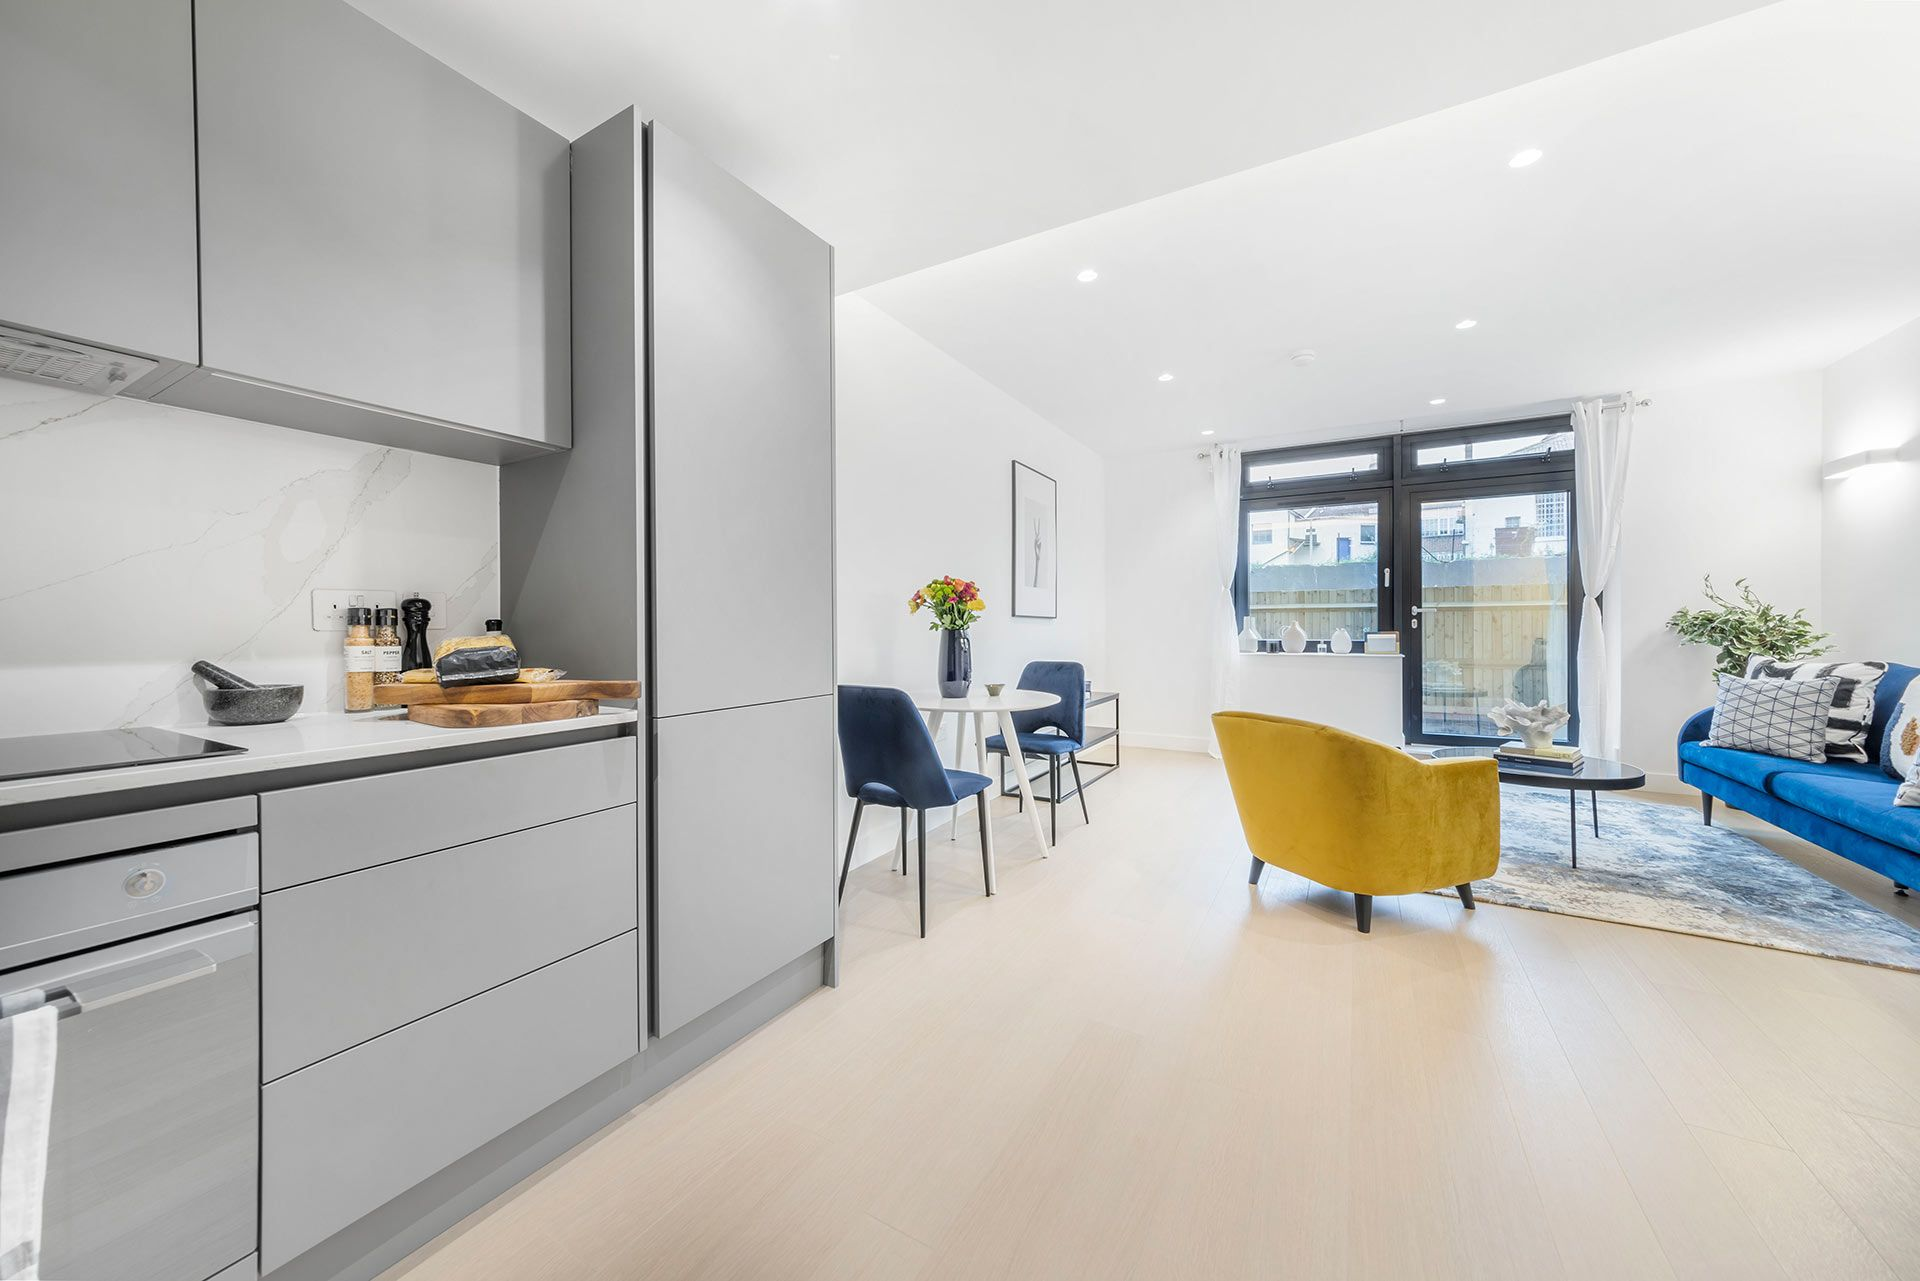 2 Bedroom apartment to rent in London SKI-VH-0043